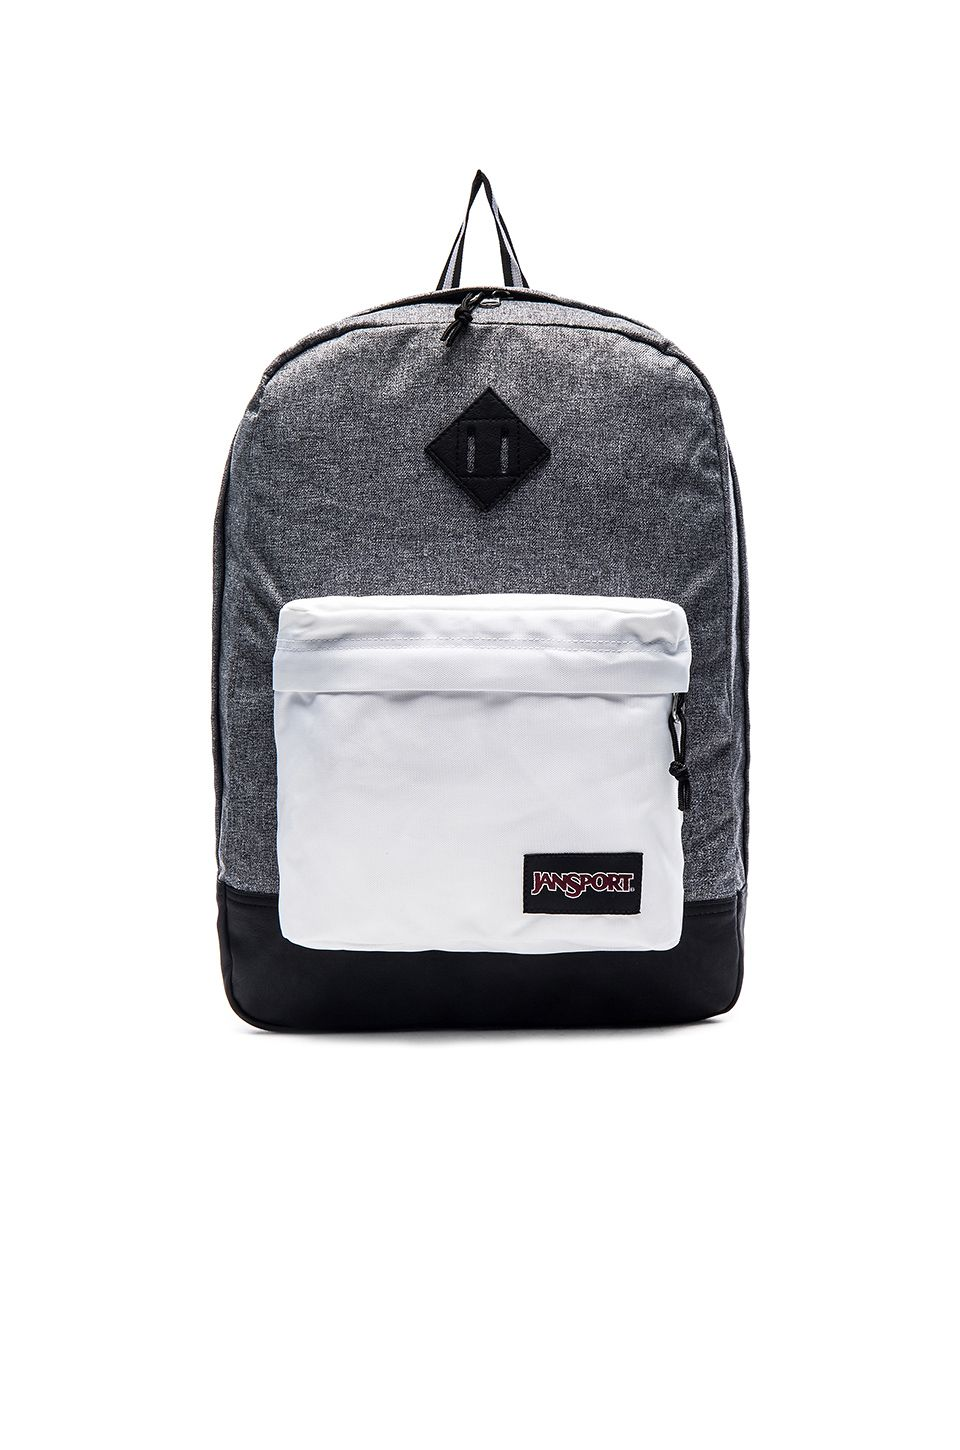 TB93 JANSPORT CA California Republic Bear Backpack Bookbag Bag ...